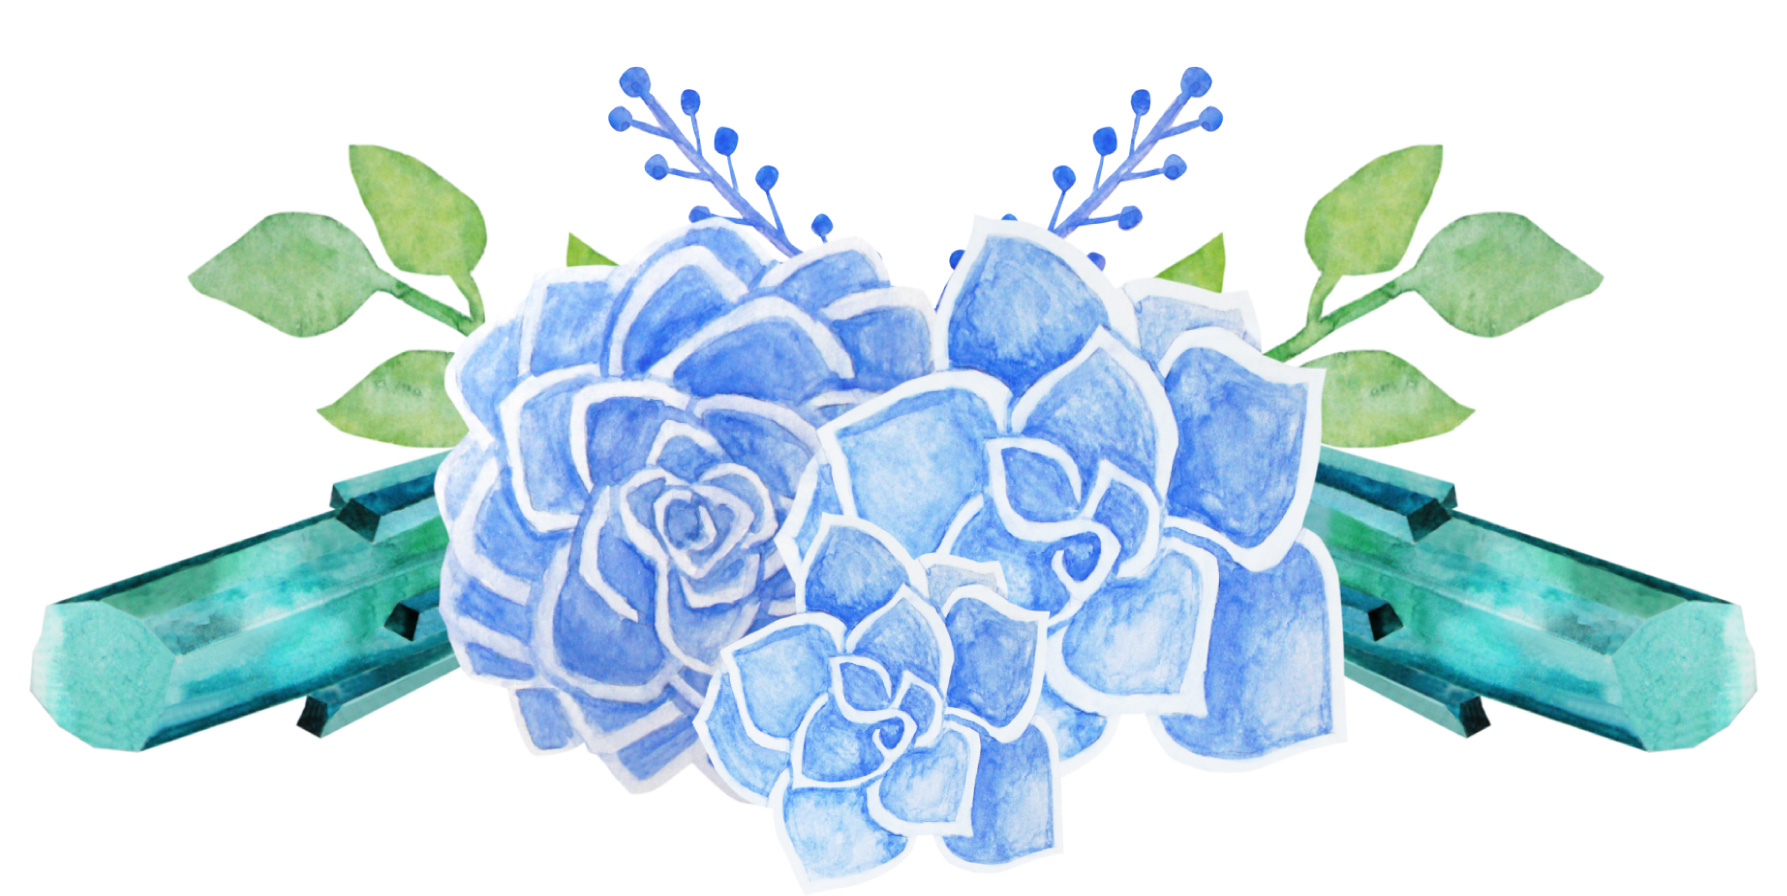 Succulents and Crystals Watercolor example image 5